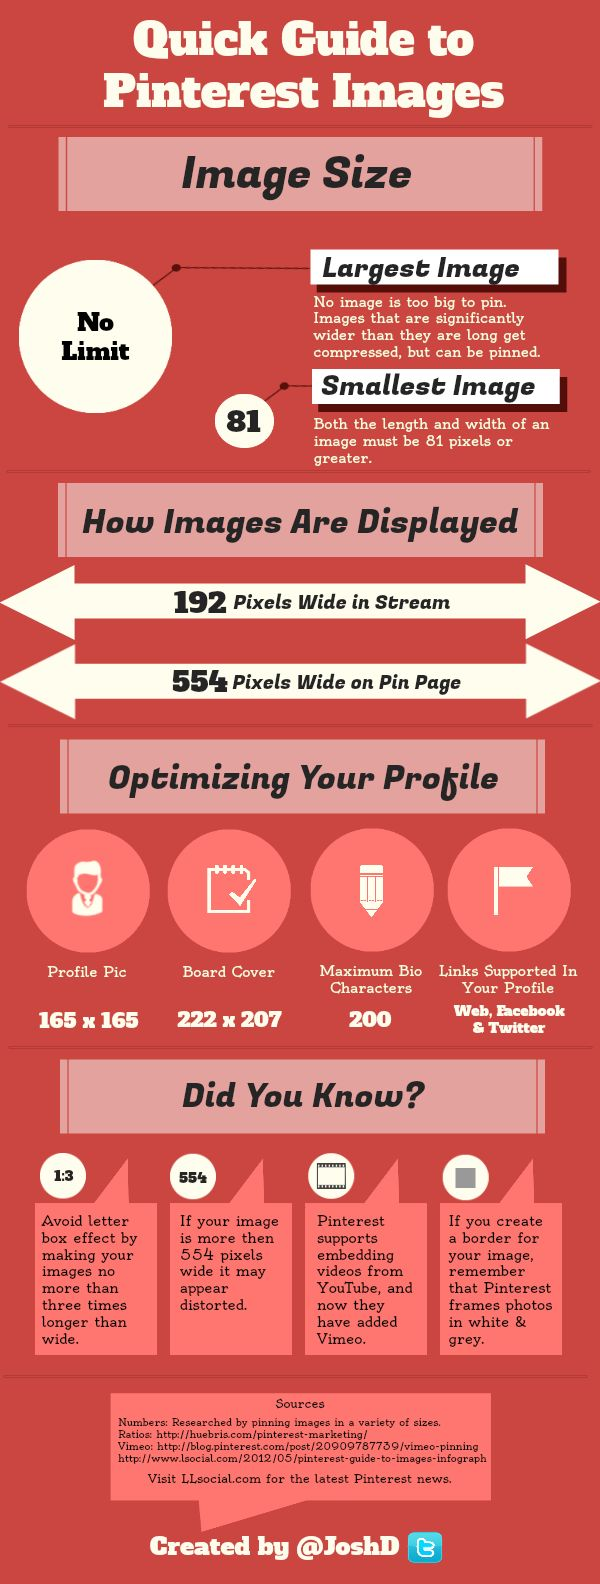 A Quick Guide to Pinterest Images - Size parameters, optimisation and tips: Quick Guide, Pinterest Infographics, Pinterest Images, Social Media, Images Infographic, Socialmedia, Pinterest Tips, Image Size, Pinterest Marketing